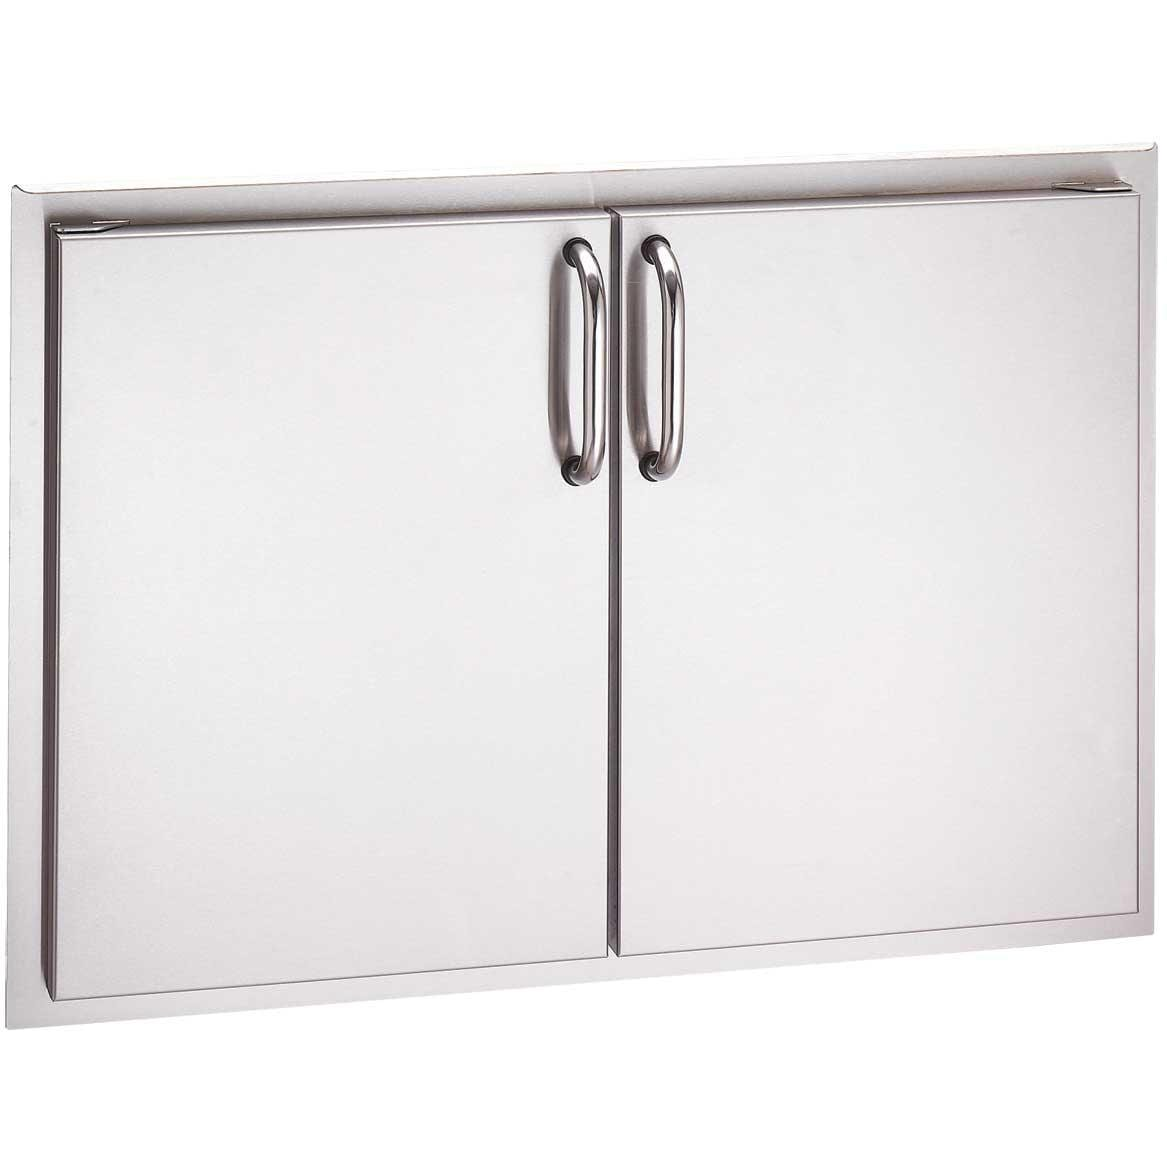 Fire Magic Select 30-Inch Double Access Door